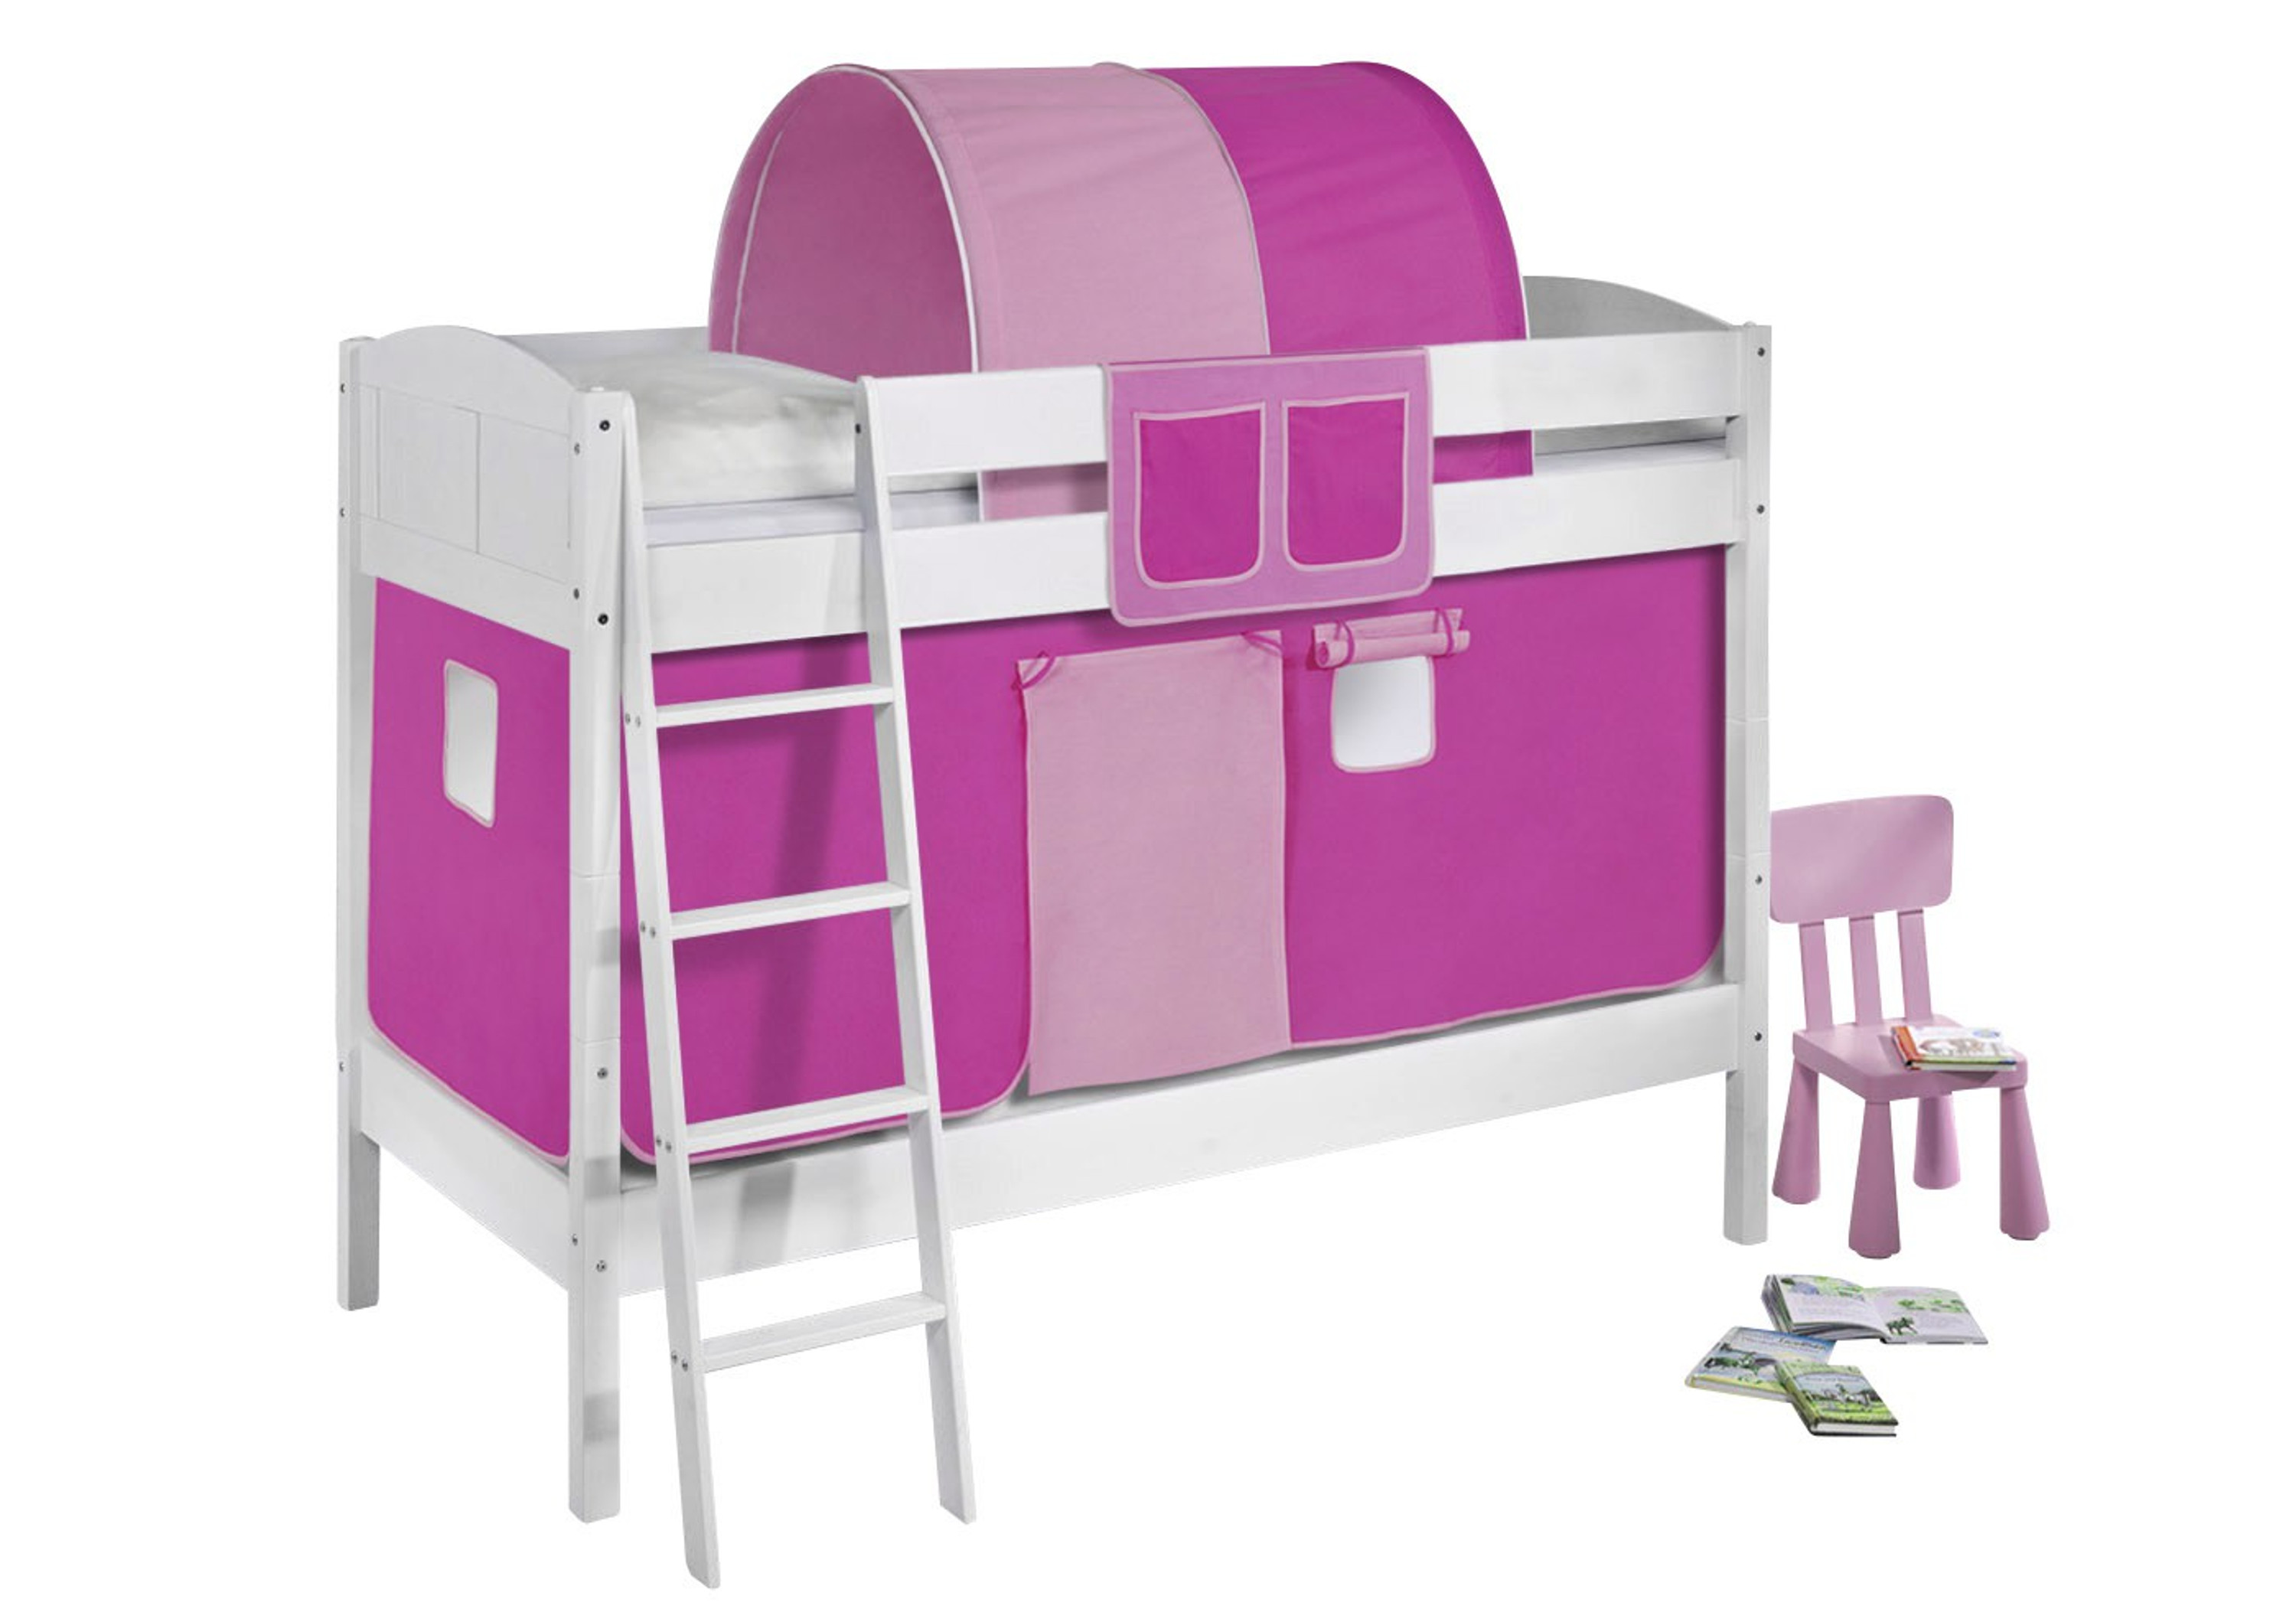 etagenbett rosa wei mit vorhang und lattenroste 4106 m bel baby kinderzimmer etagenbetten. Black Bedroom Furniture Sets. Home Design Ideas